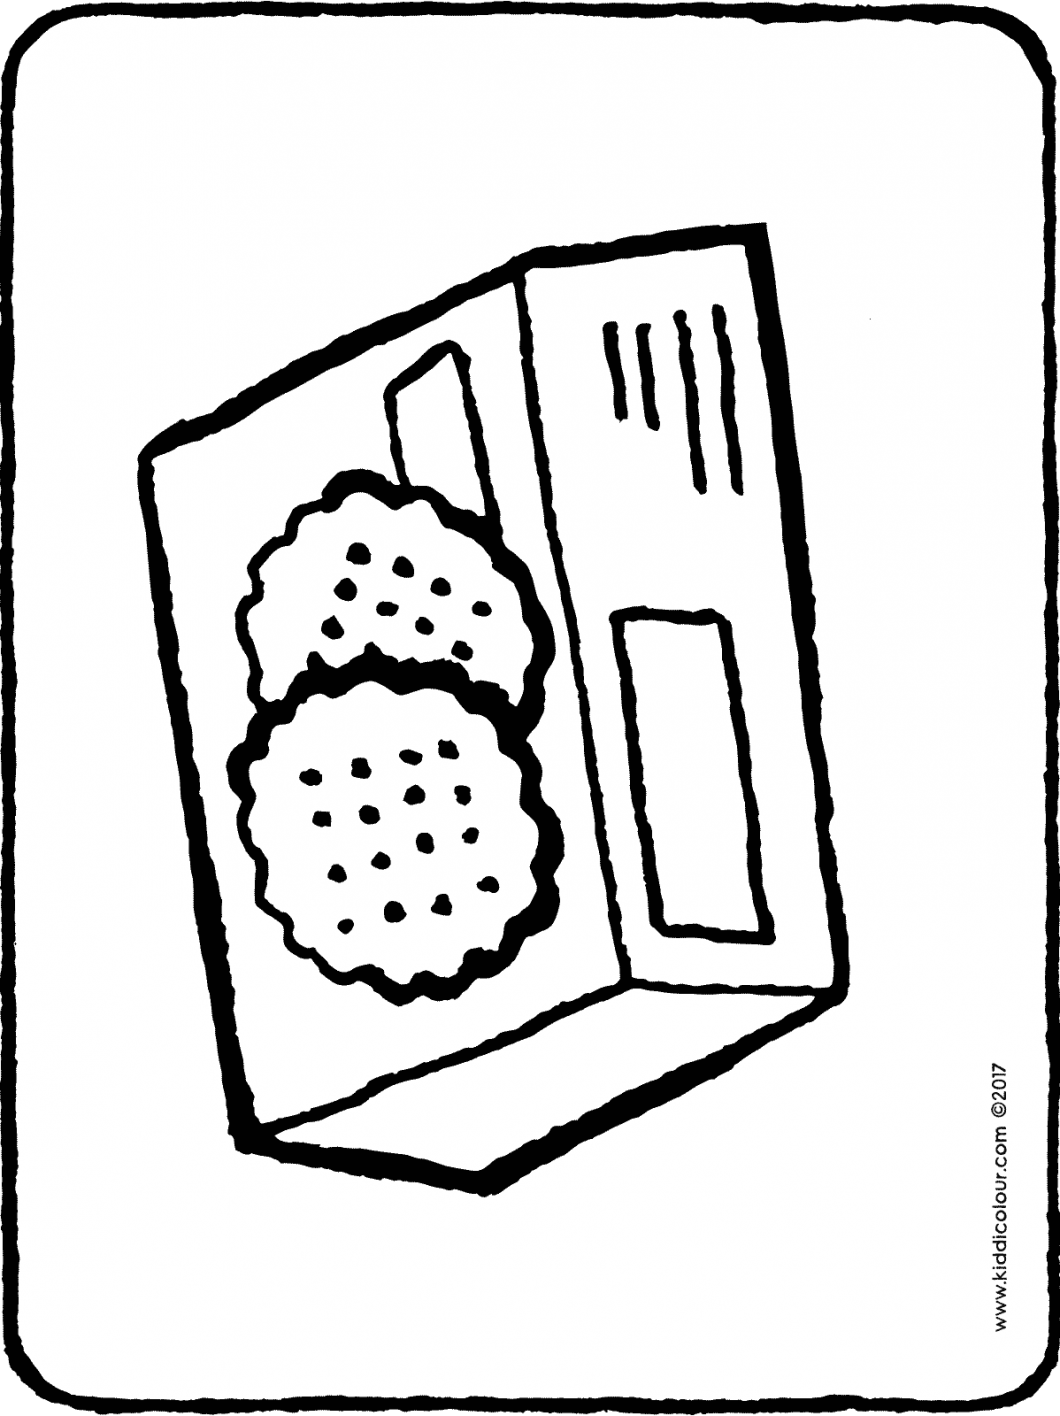 a packet of yummy cookies colouring page drawing picture 01H